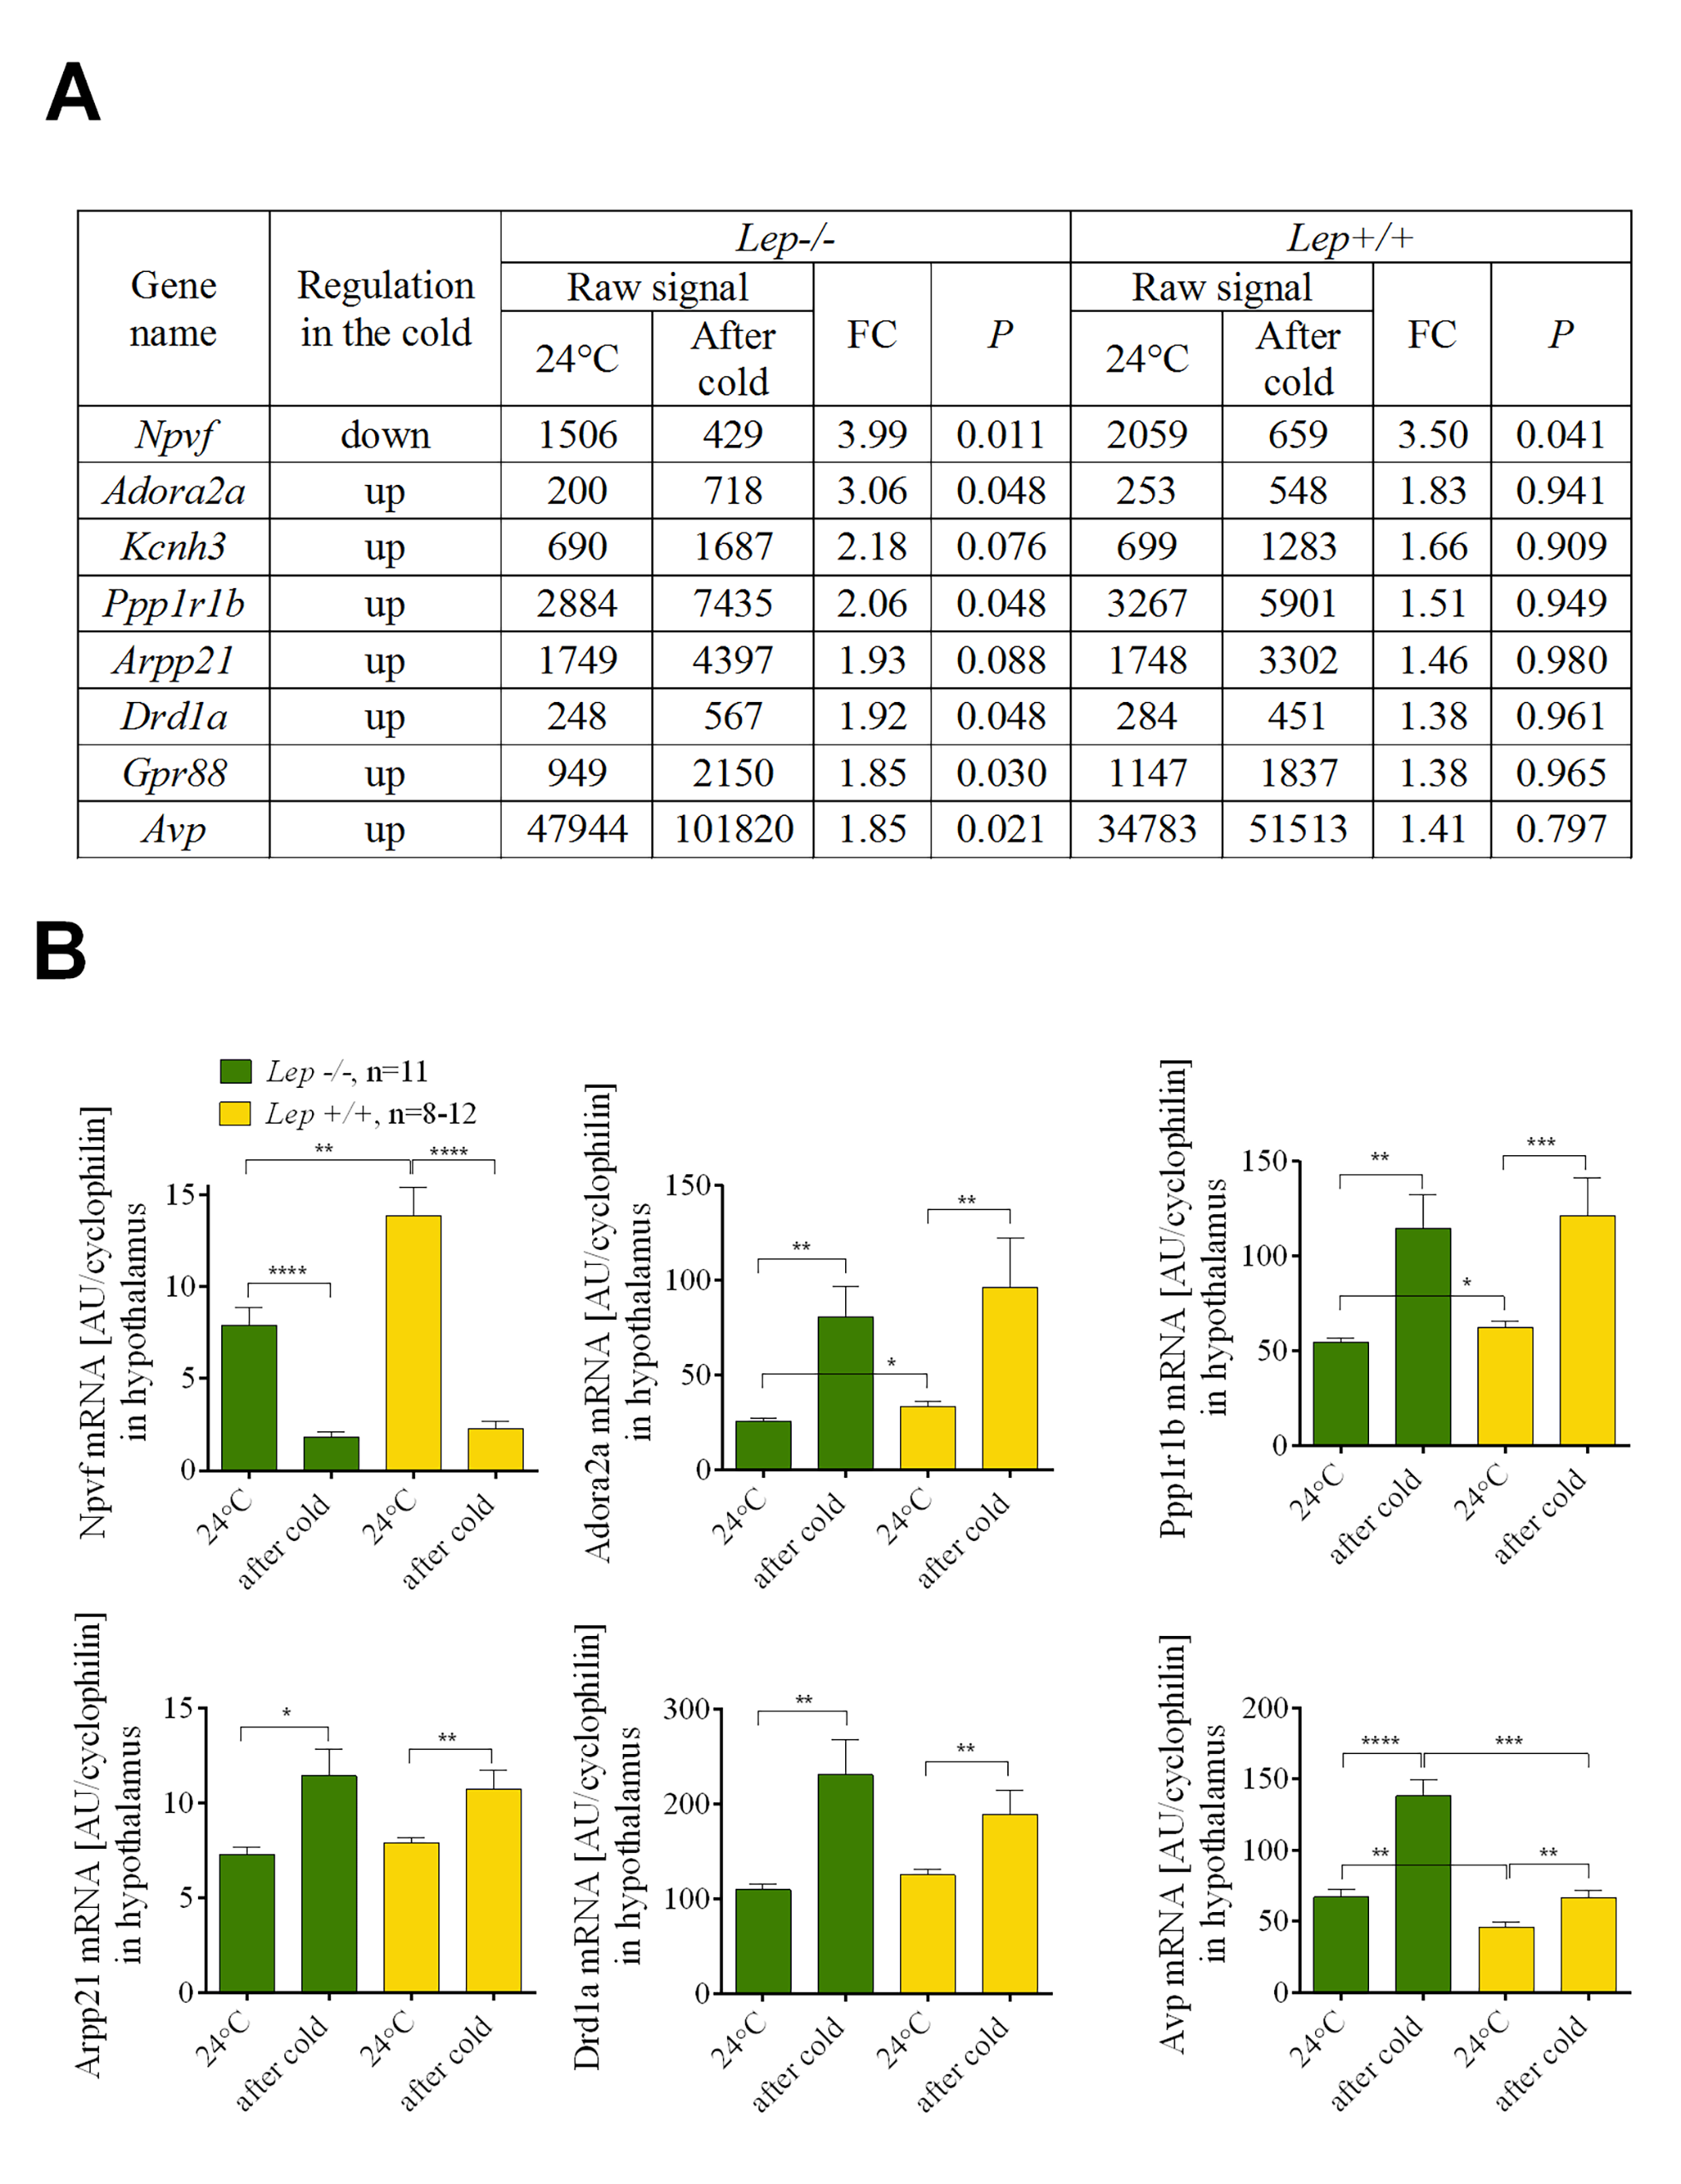 <i>Npvf</i> gene is a hypothalamic biomarker of cold-activated thermogenesis.